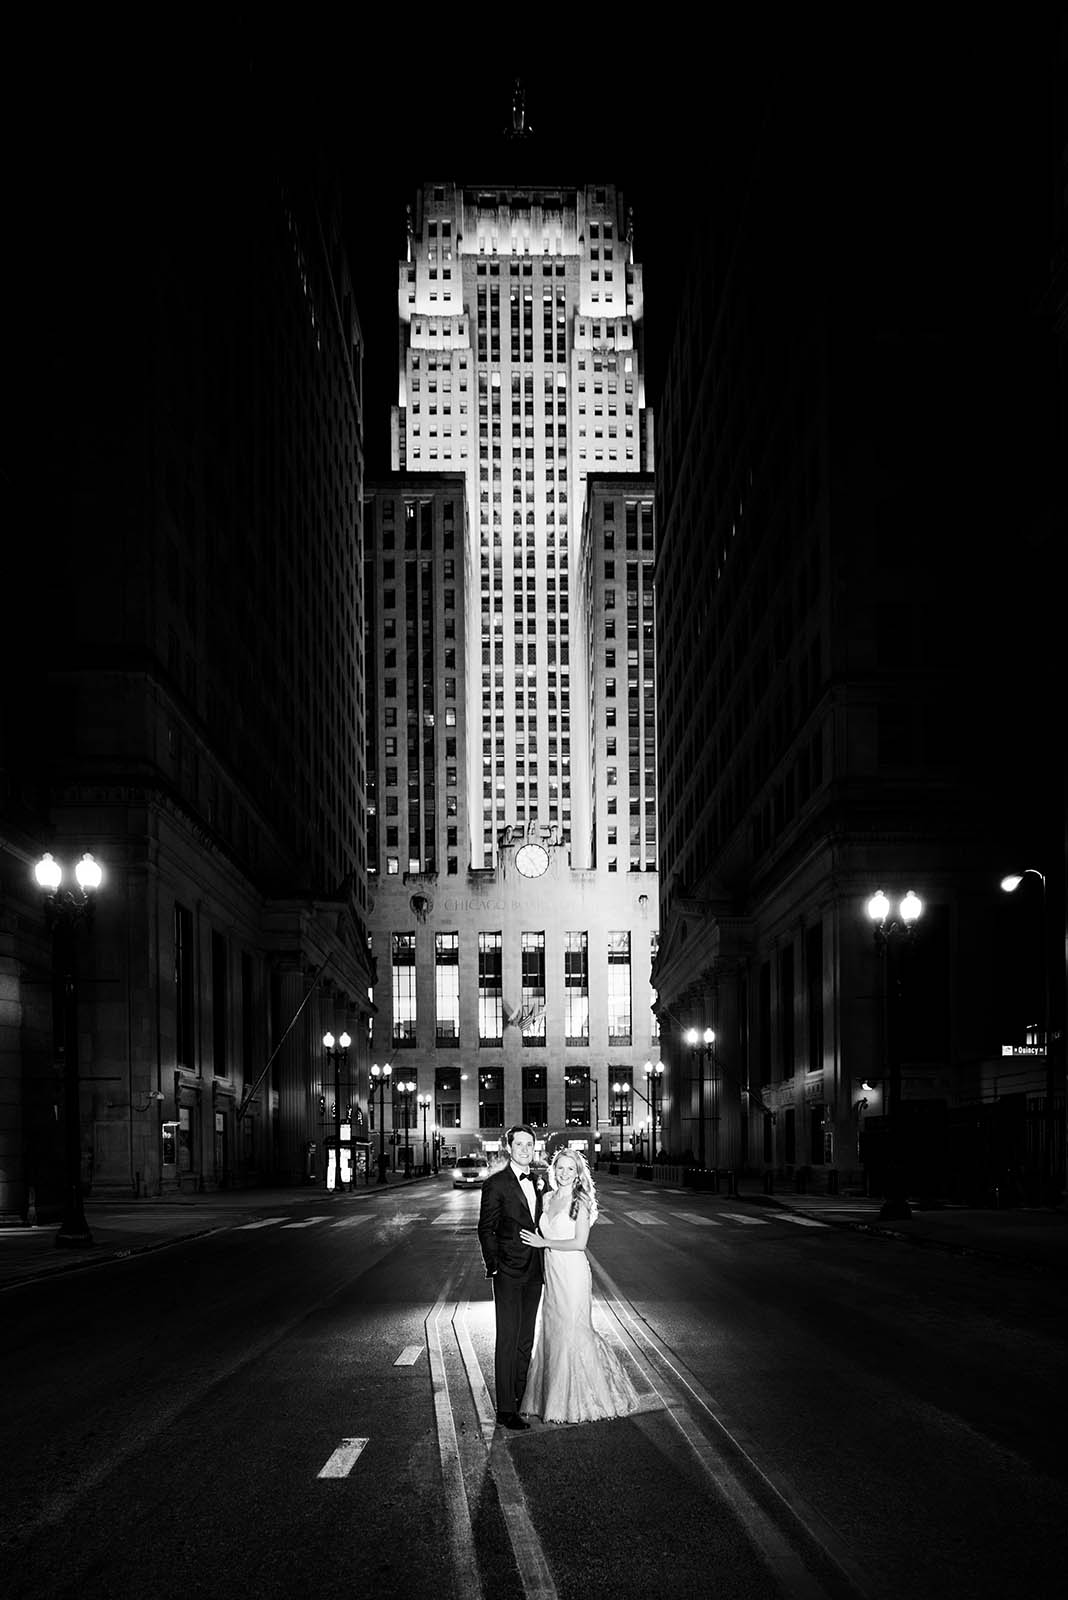 LaSalle Street Bride Groom Board of Trade Chicago